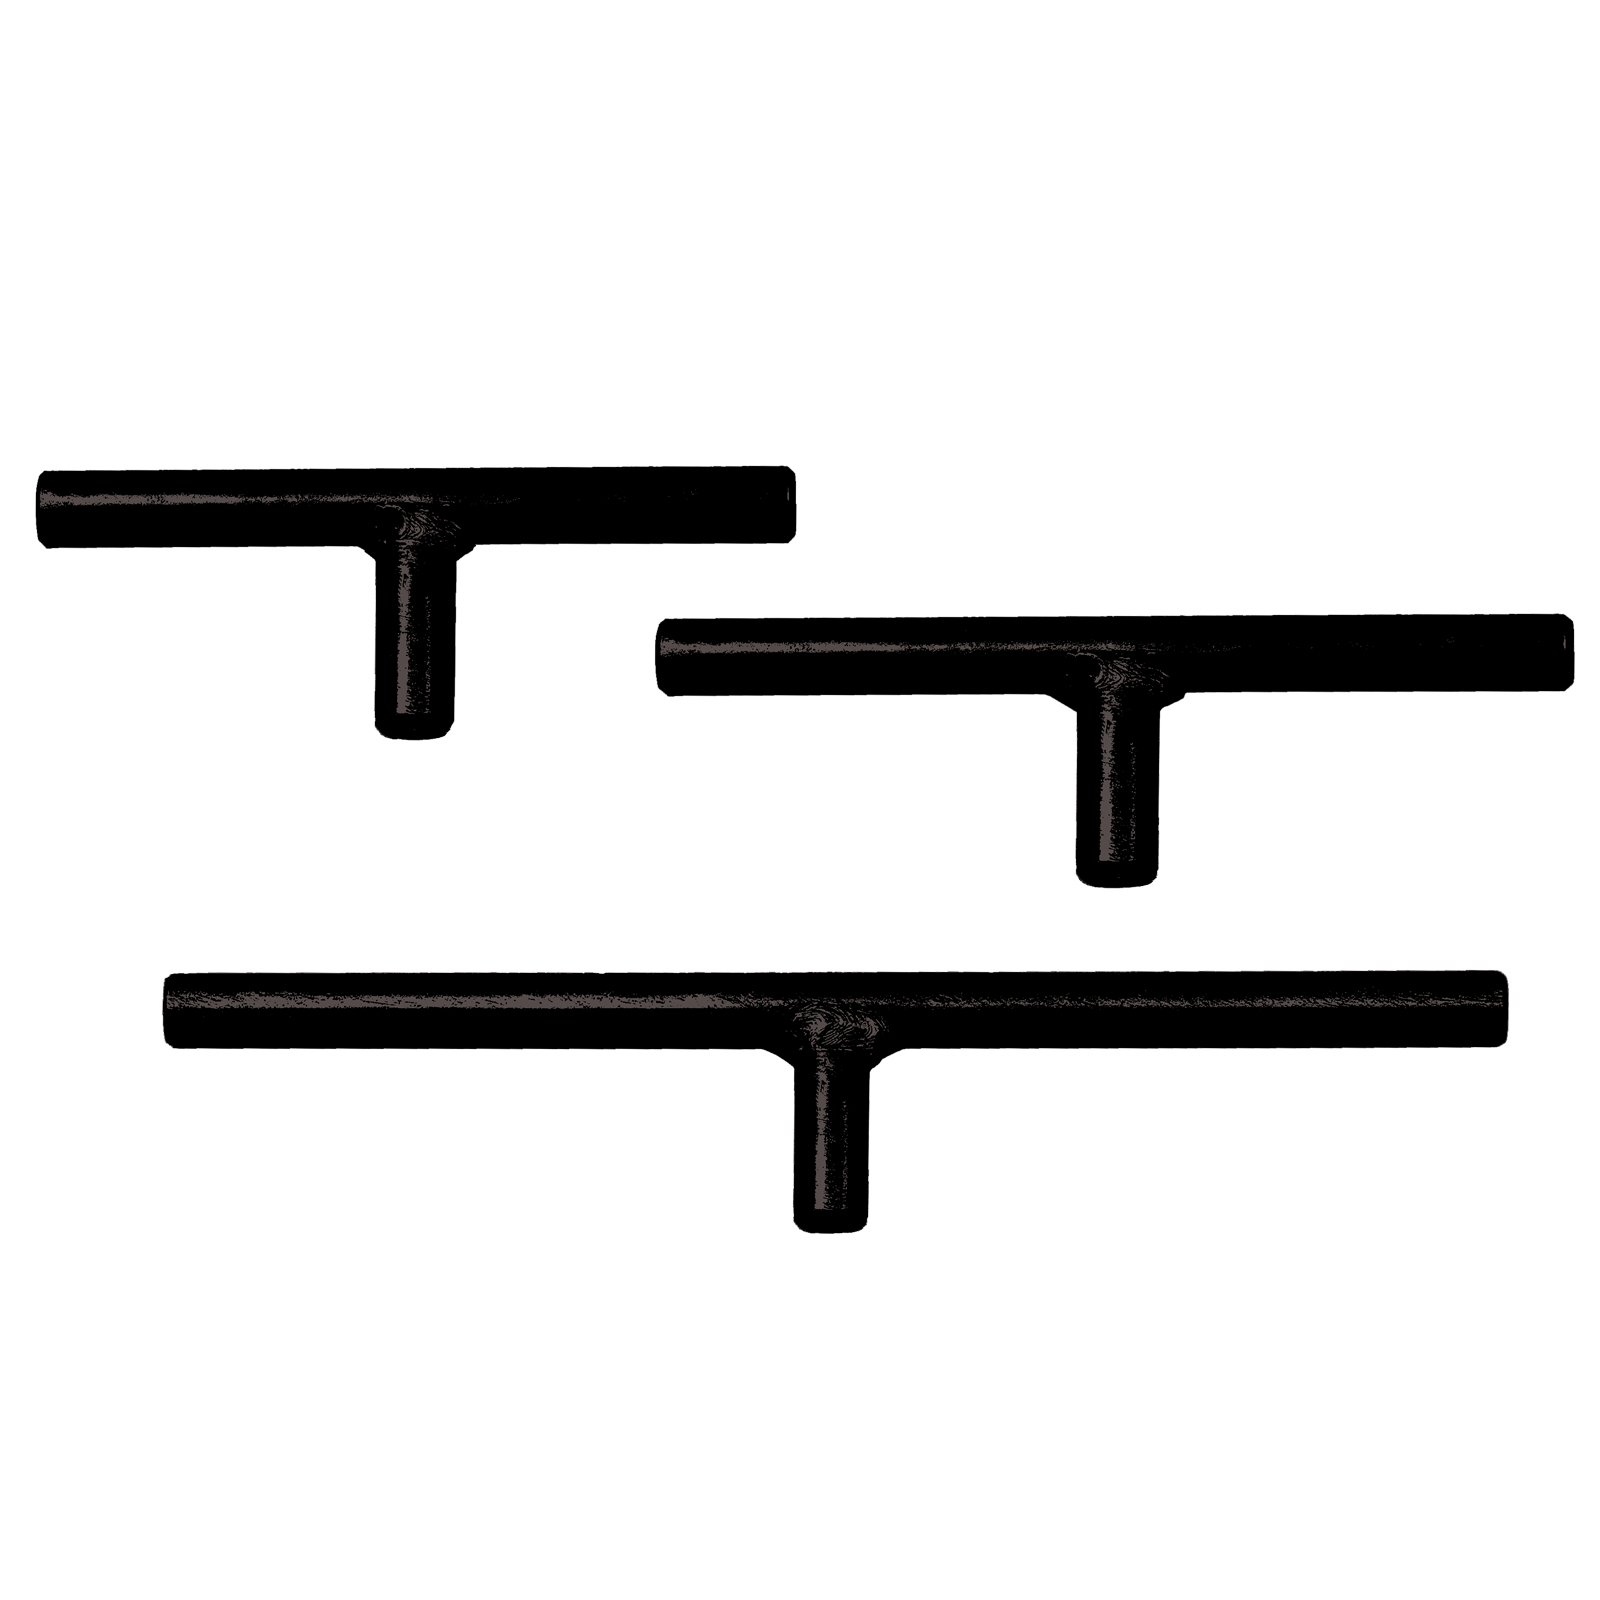 Solid Bar Tool Rest Set For Mini Lathes 3 Piece 58 In Post And